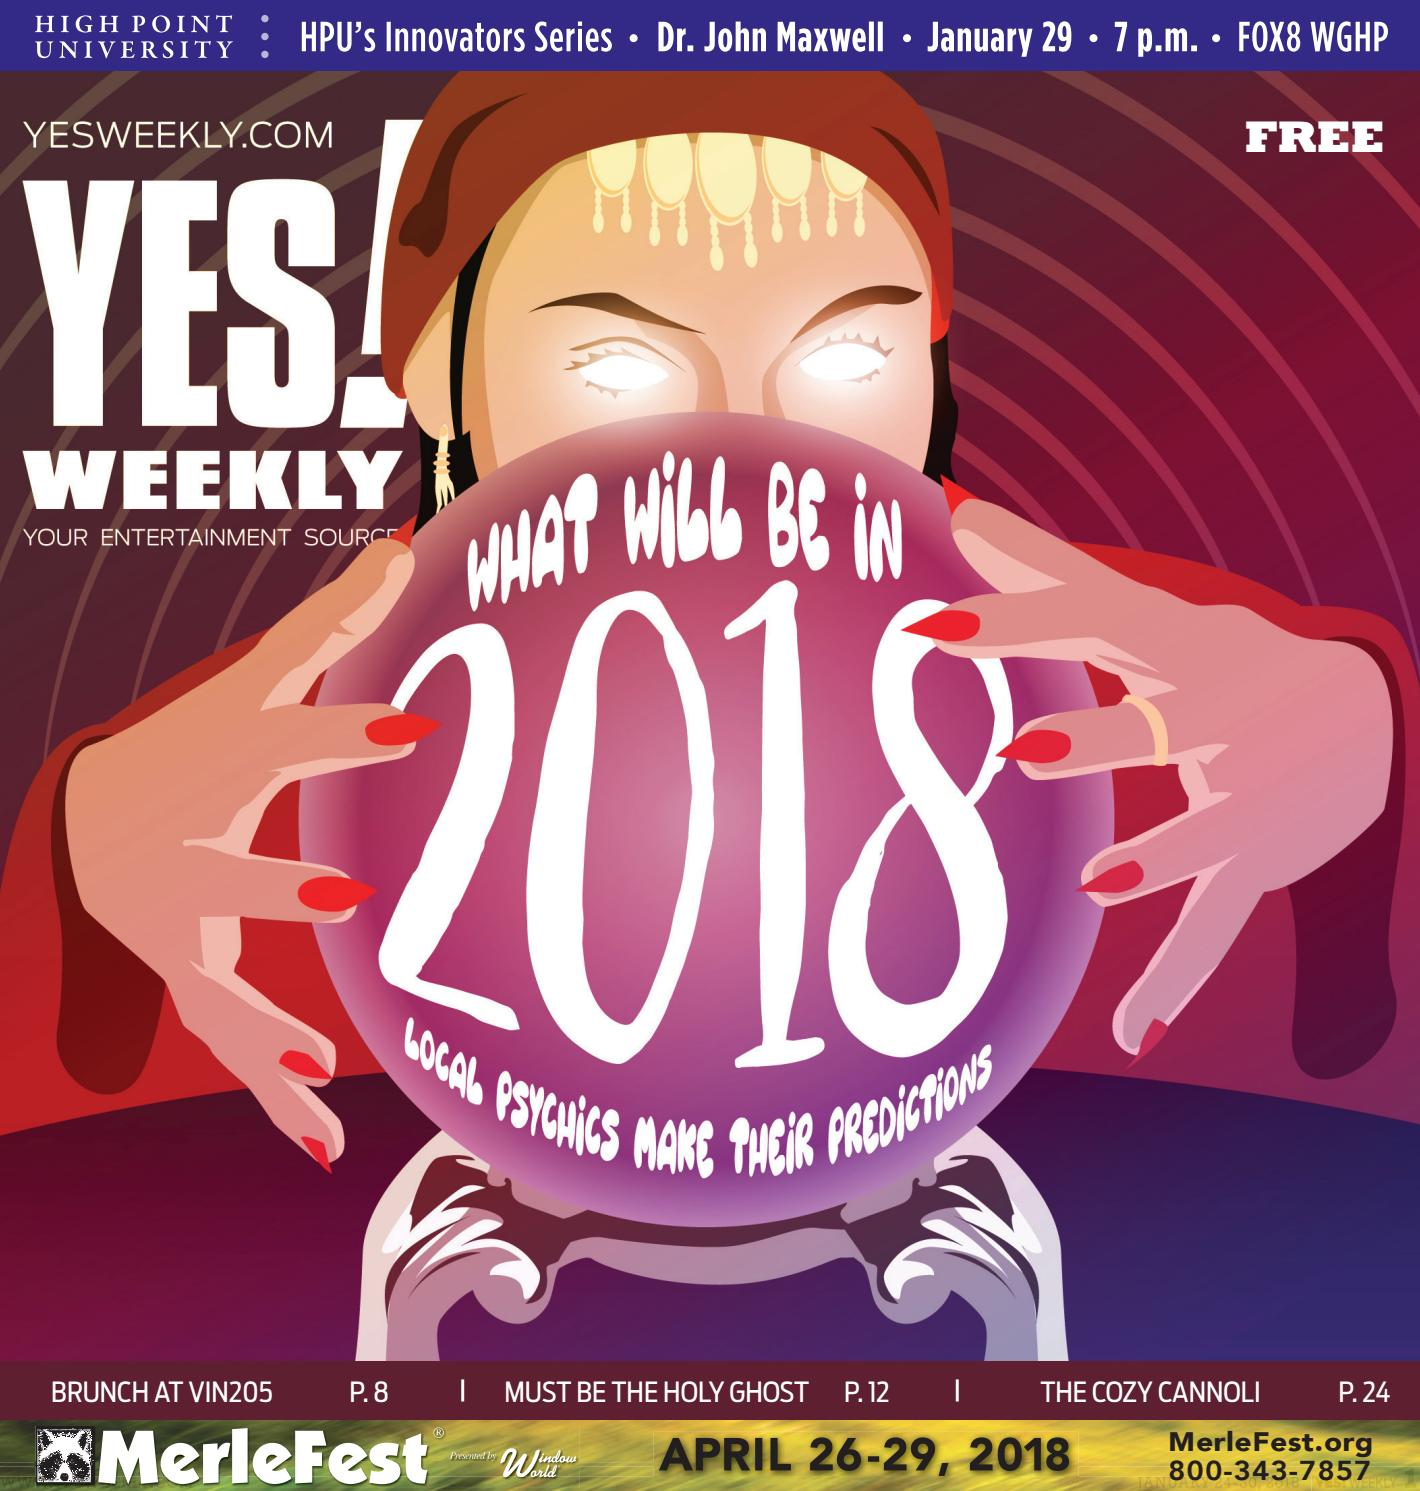 c2edc027a Yes! Weekly - January 24